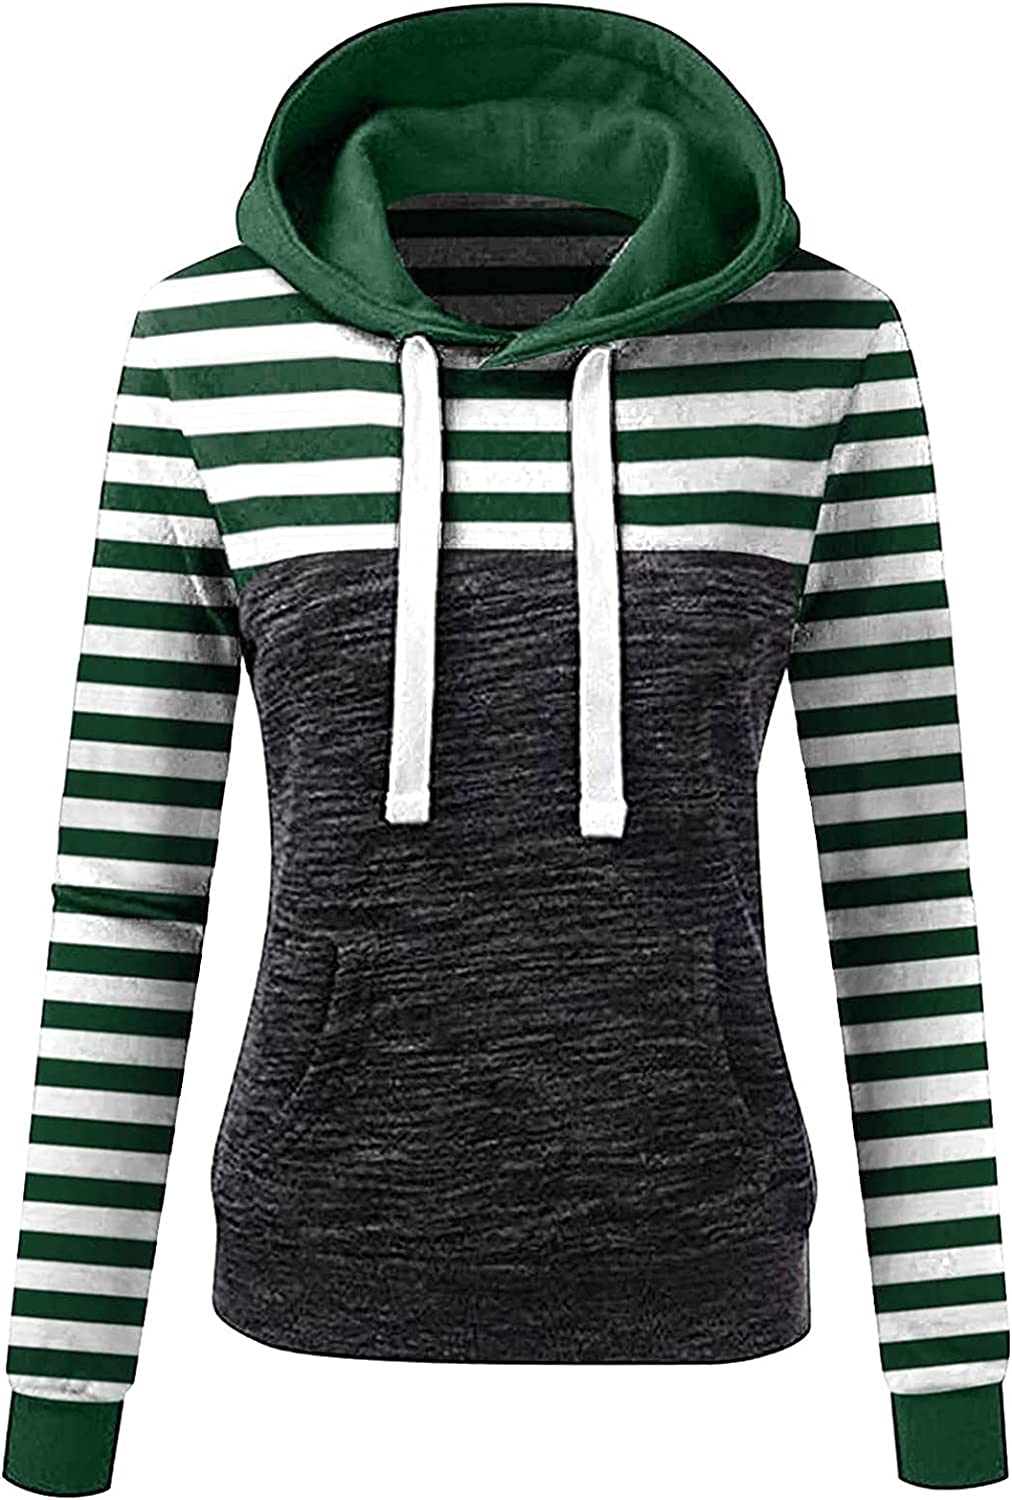 Jackets Cute Ranking TOP5 gift Oversized Hoodies Women W Pullover Vintage Sweaters